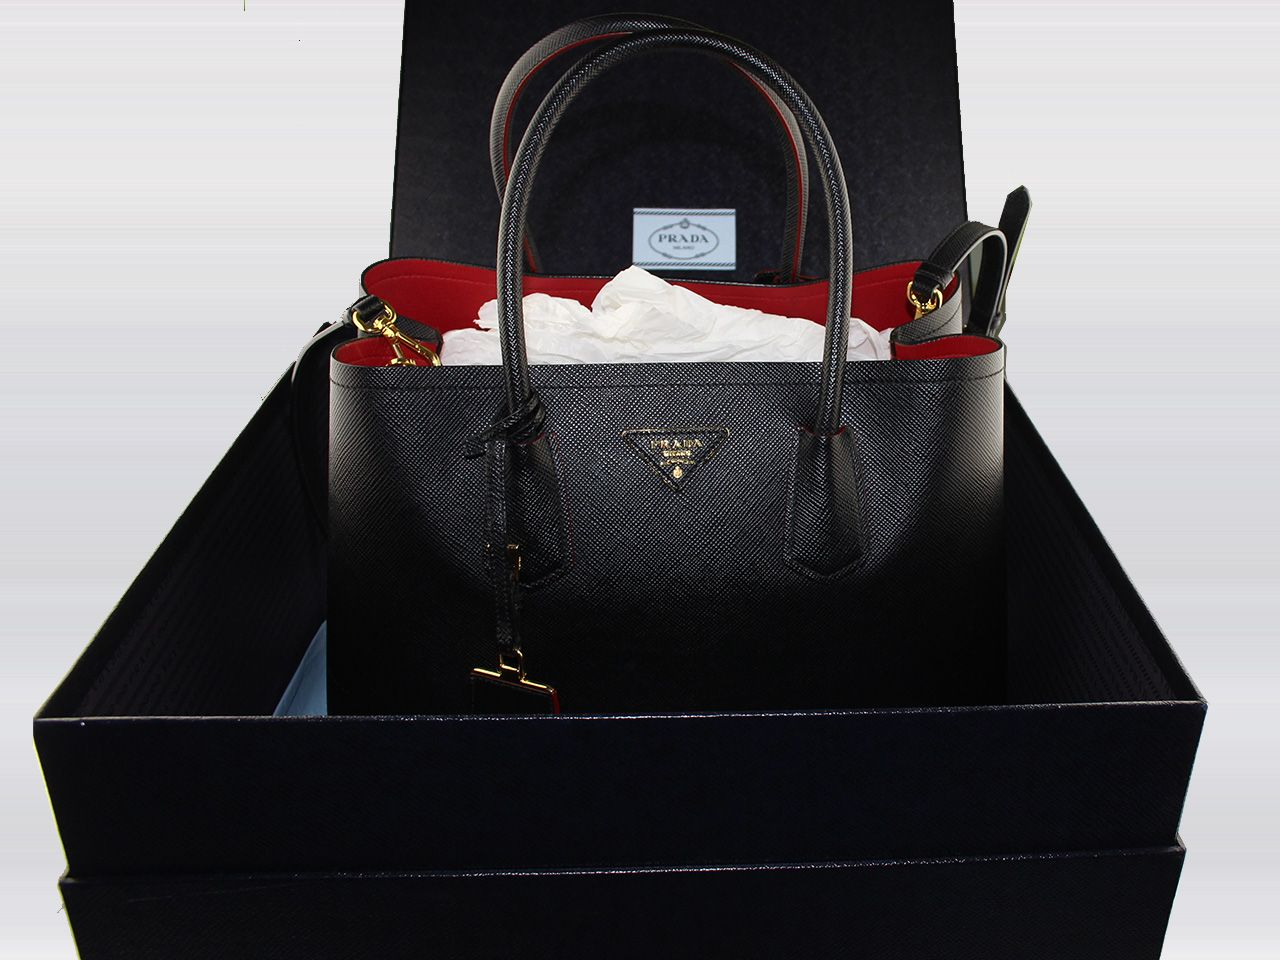 sac main prada double bag en cuir saffiano couleur noir. Black Bedroom Furniture Sets. Home Design Ideas